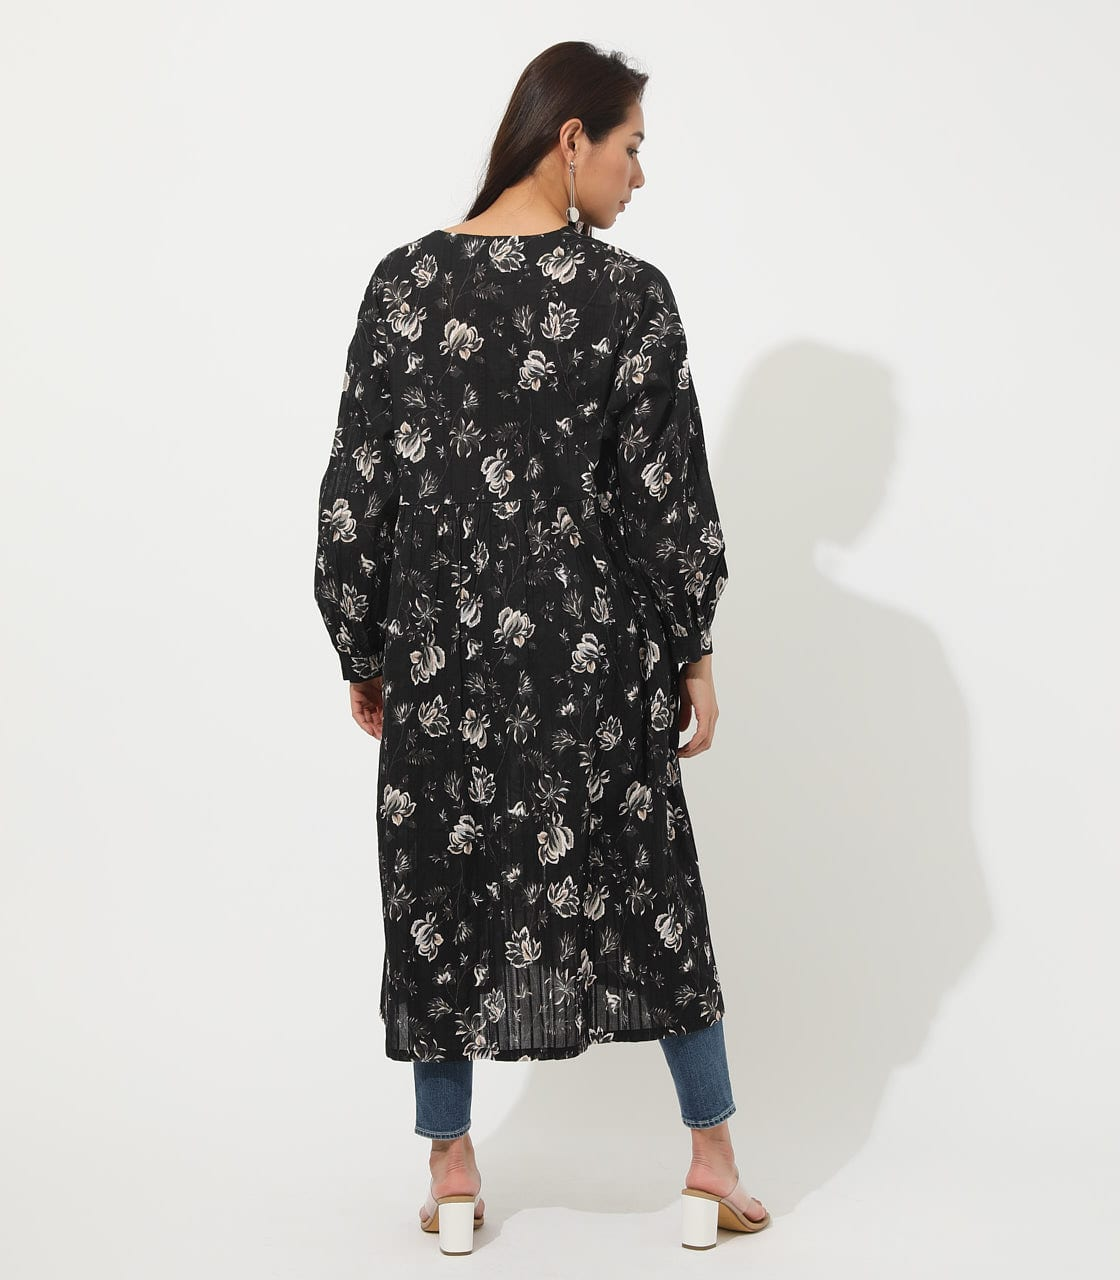 【AZUL BY MOUSSY】FLOWER GOWN 詳細画像 柄BLK 6